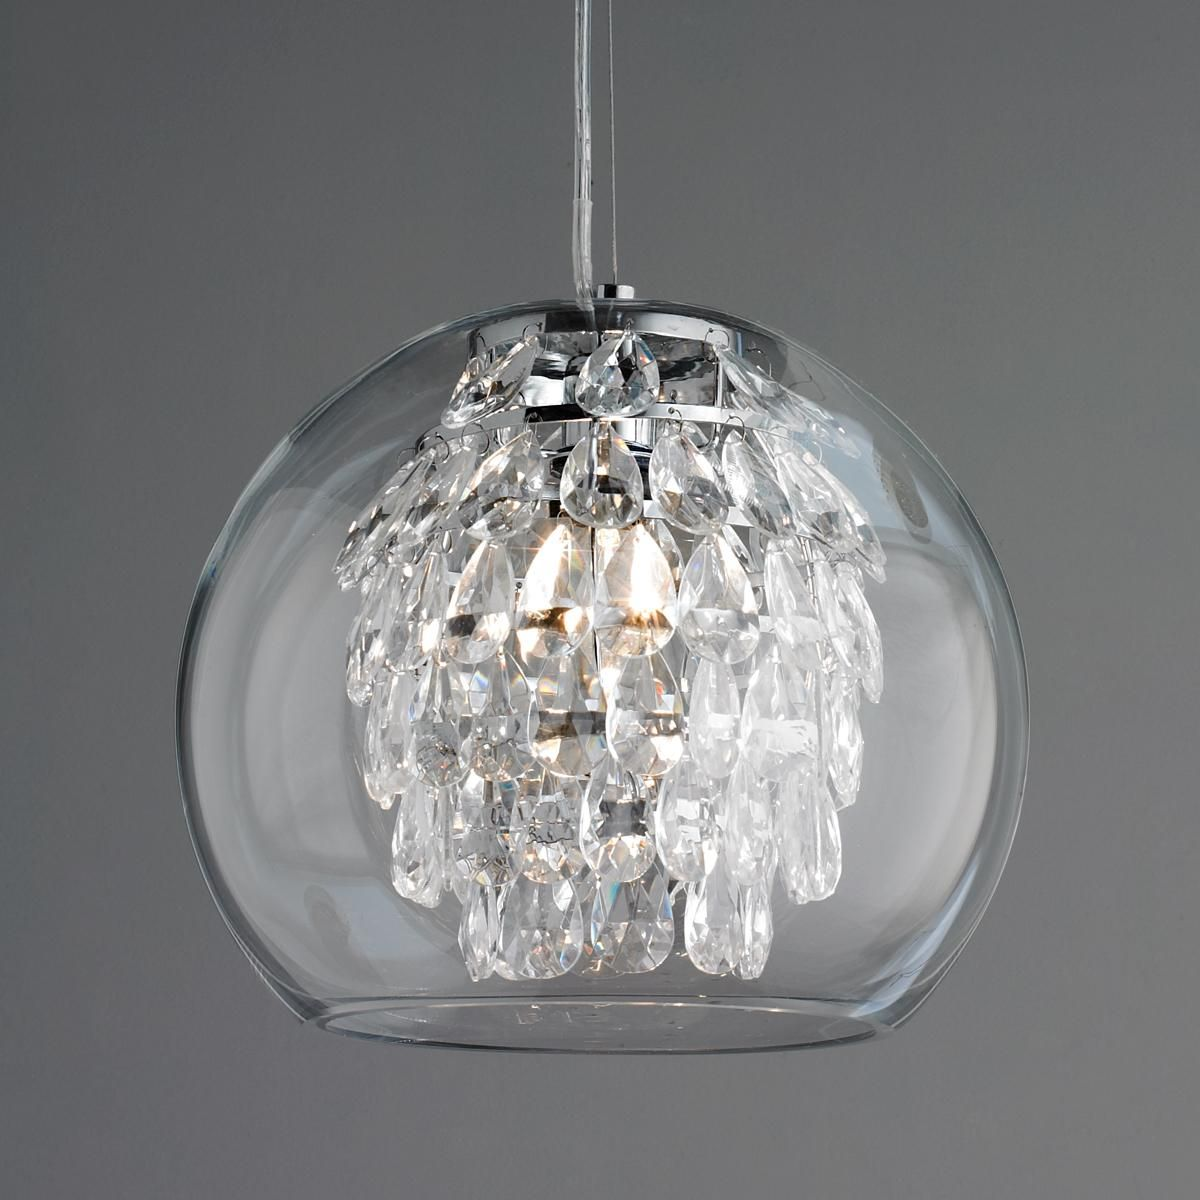 Glass Globe and Crystal Pendant Light | Kitchen pendants, Pendant ...